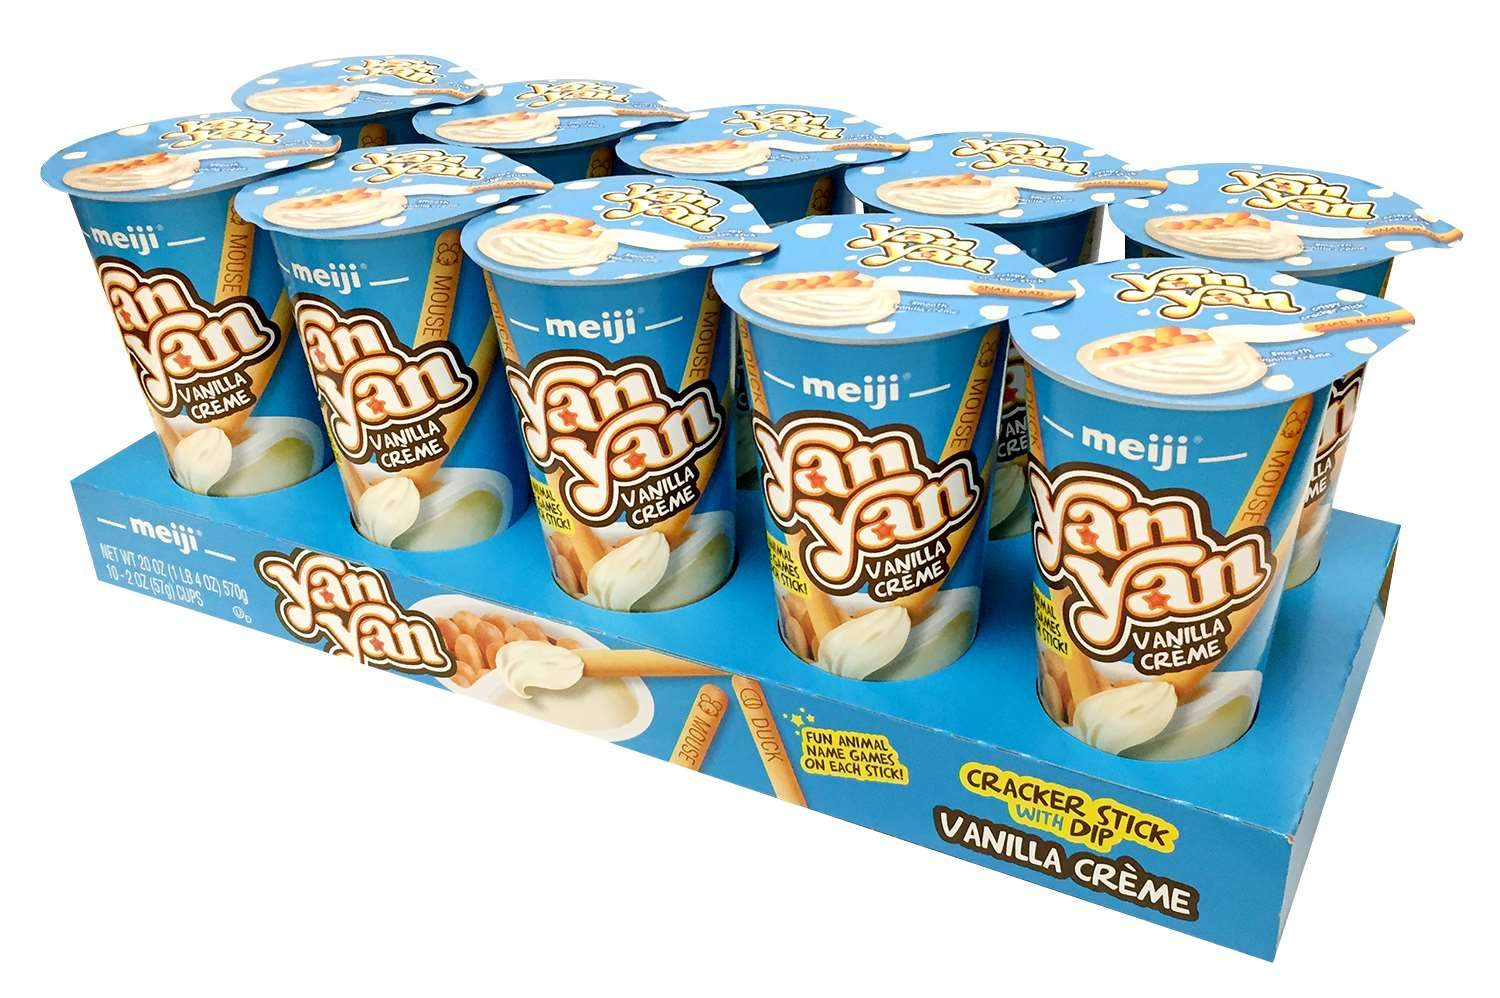 Yan Yan Cracker Stick with Dip Meiji Vanilla Crème 2 Oz-10 Count